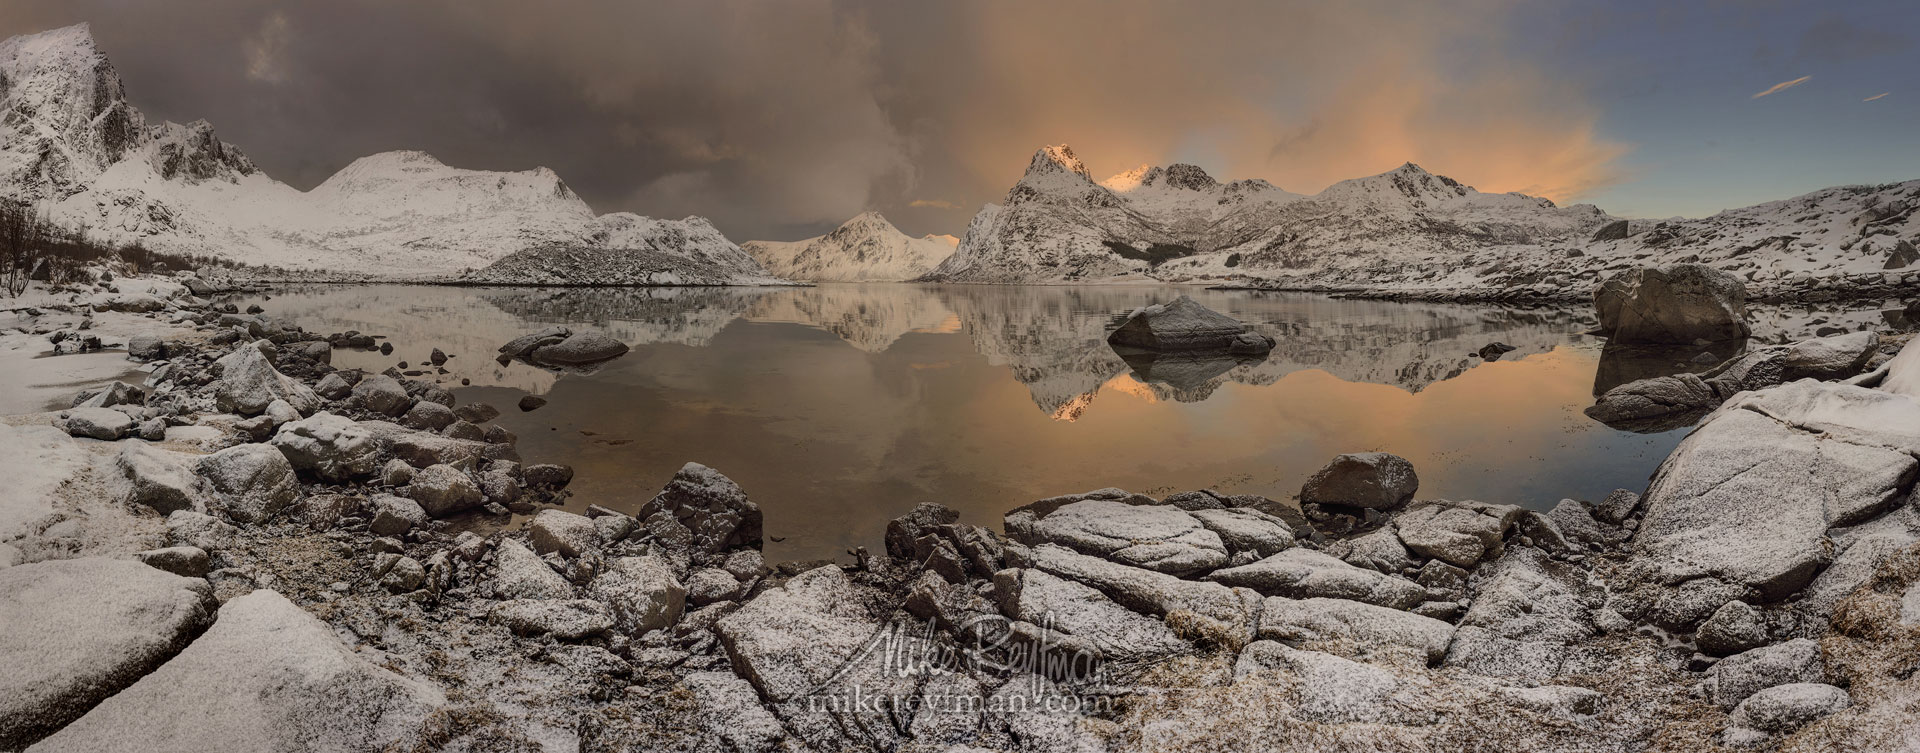 Sunset at Flakstad fjord, Flakstadøya, Lofoten archipelago, Norway LF-MRD1E0503-9_Pano-2.55x1 - Lofoten Archipelago in Winter, Arctic Norway - Mike Reyfman Photography